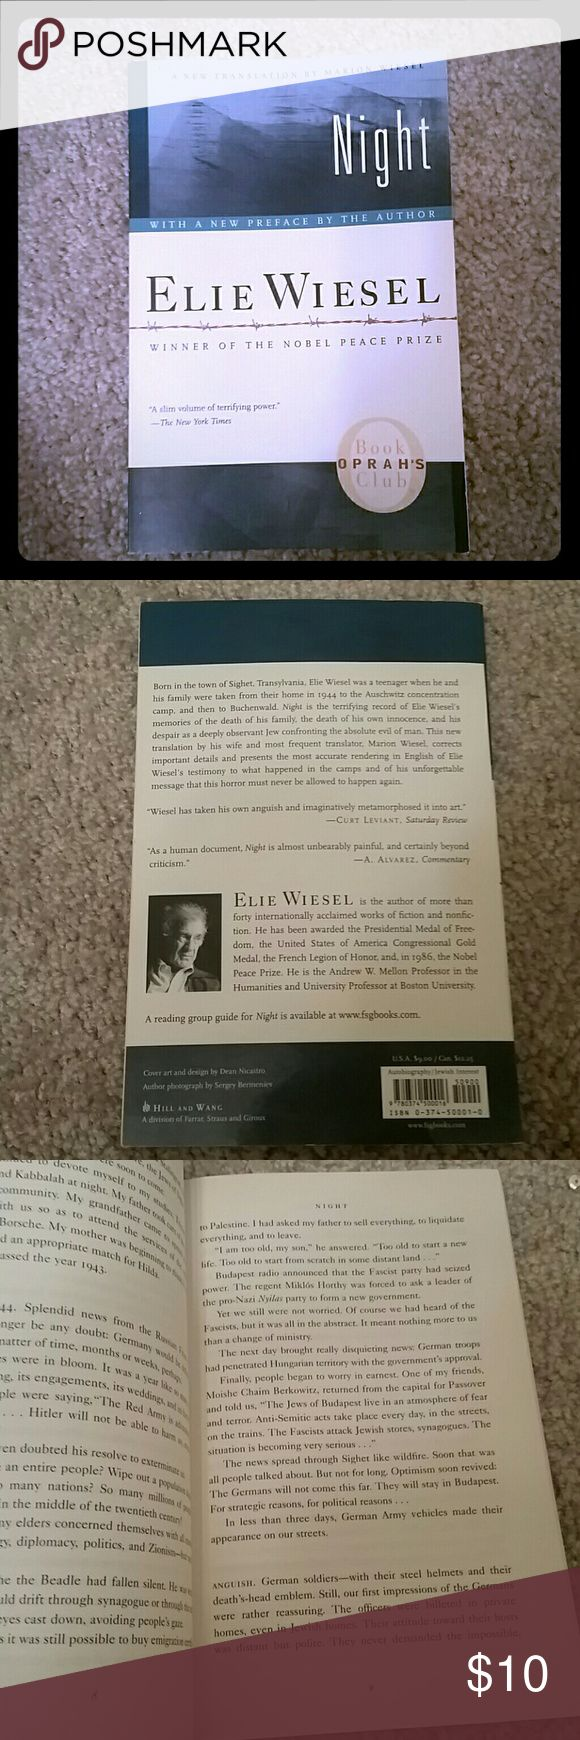 Night by Ellie Wiesel Assigned book Other